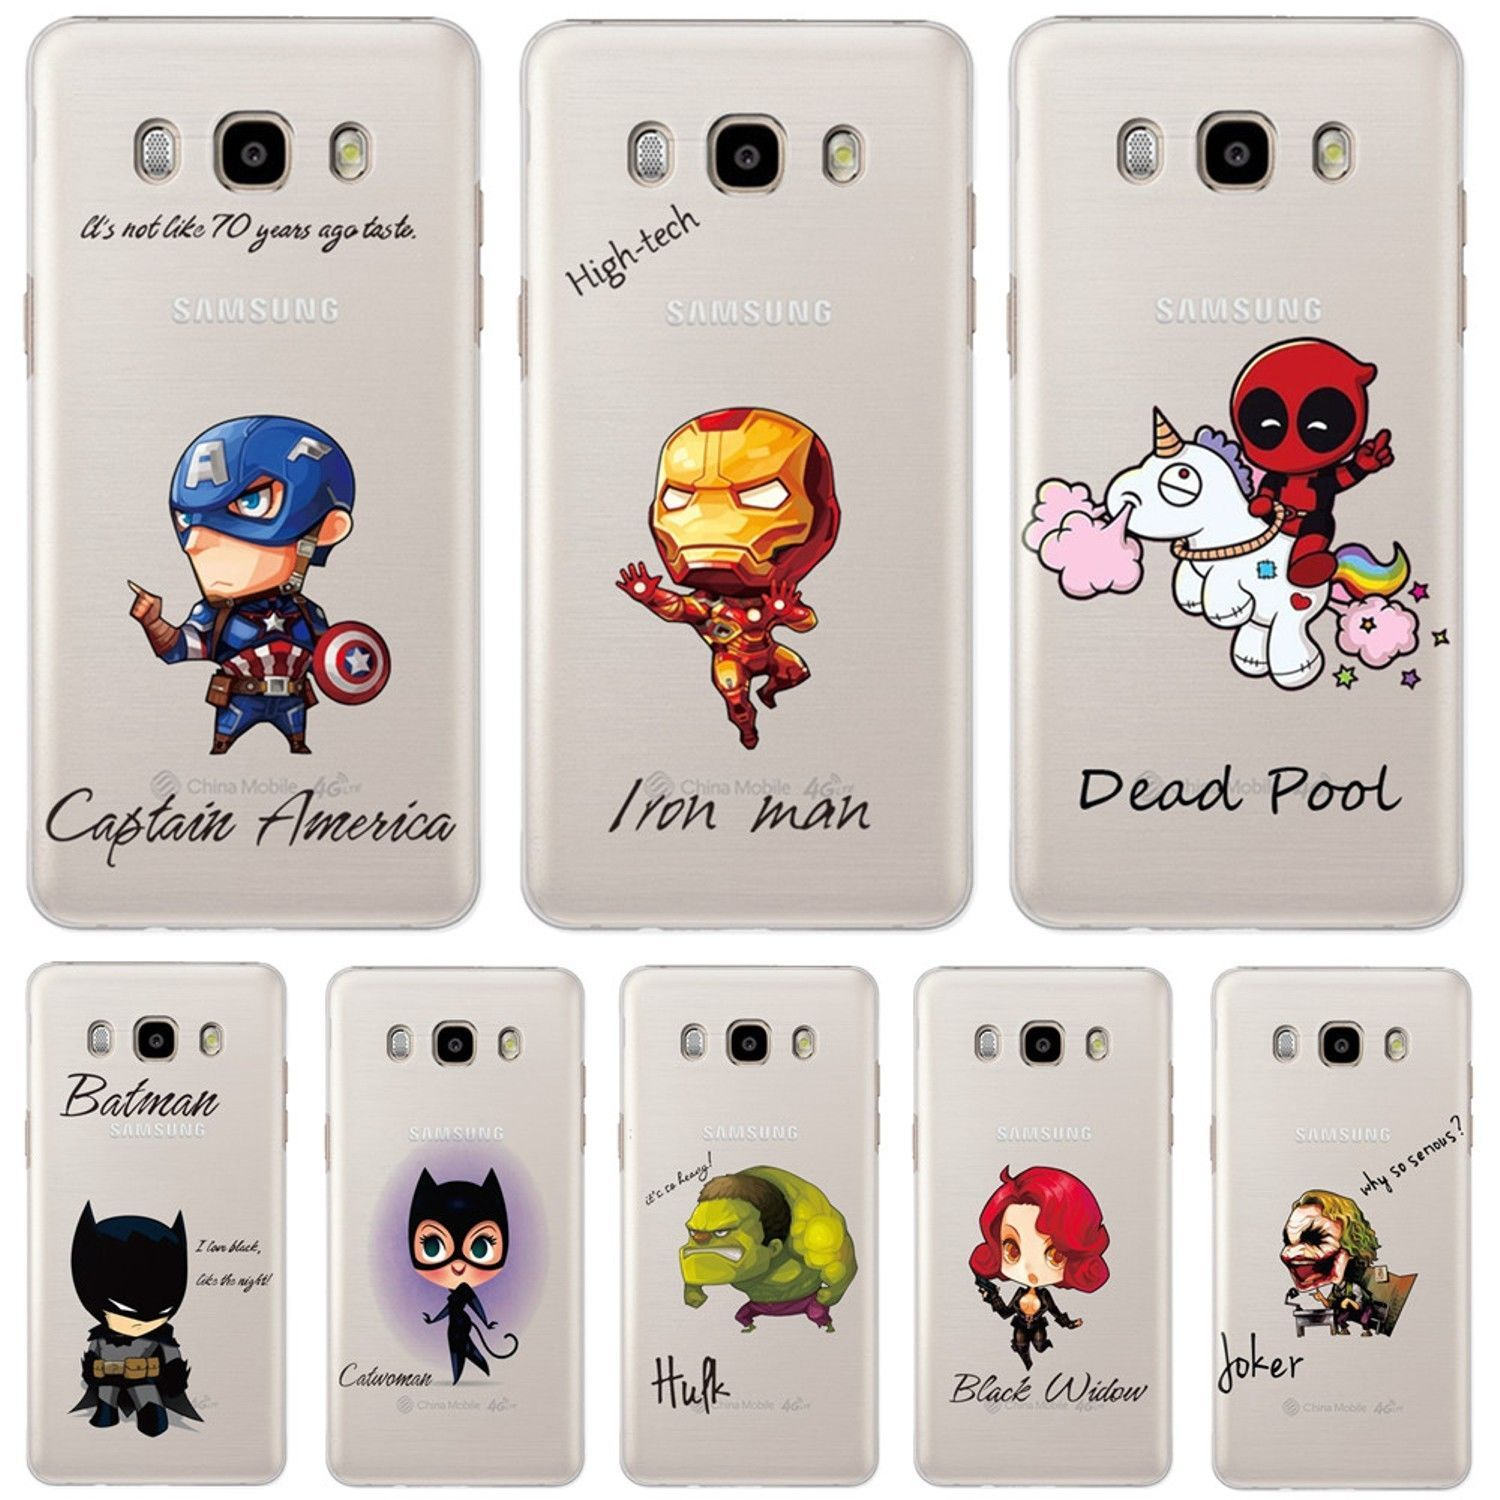 85e70ed8a2f Marvel Heroes Phone Case Cover For Samsung Galaxy S8 S8+ S7 S6 Edge Joker  Batman